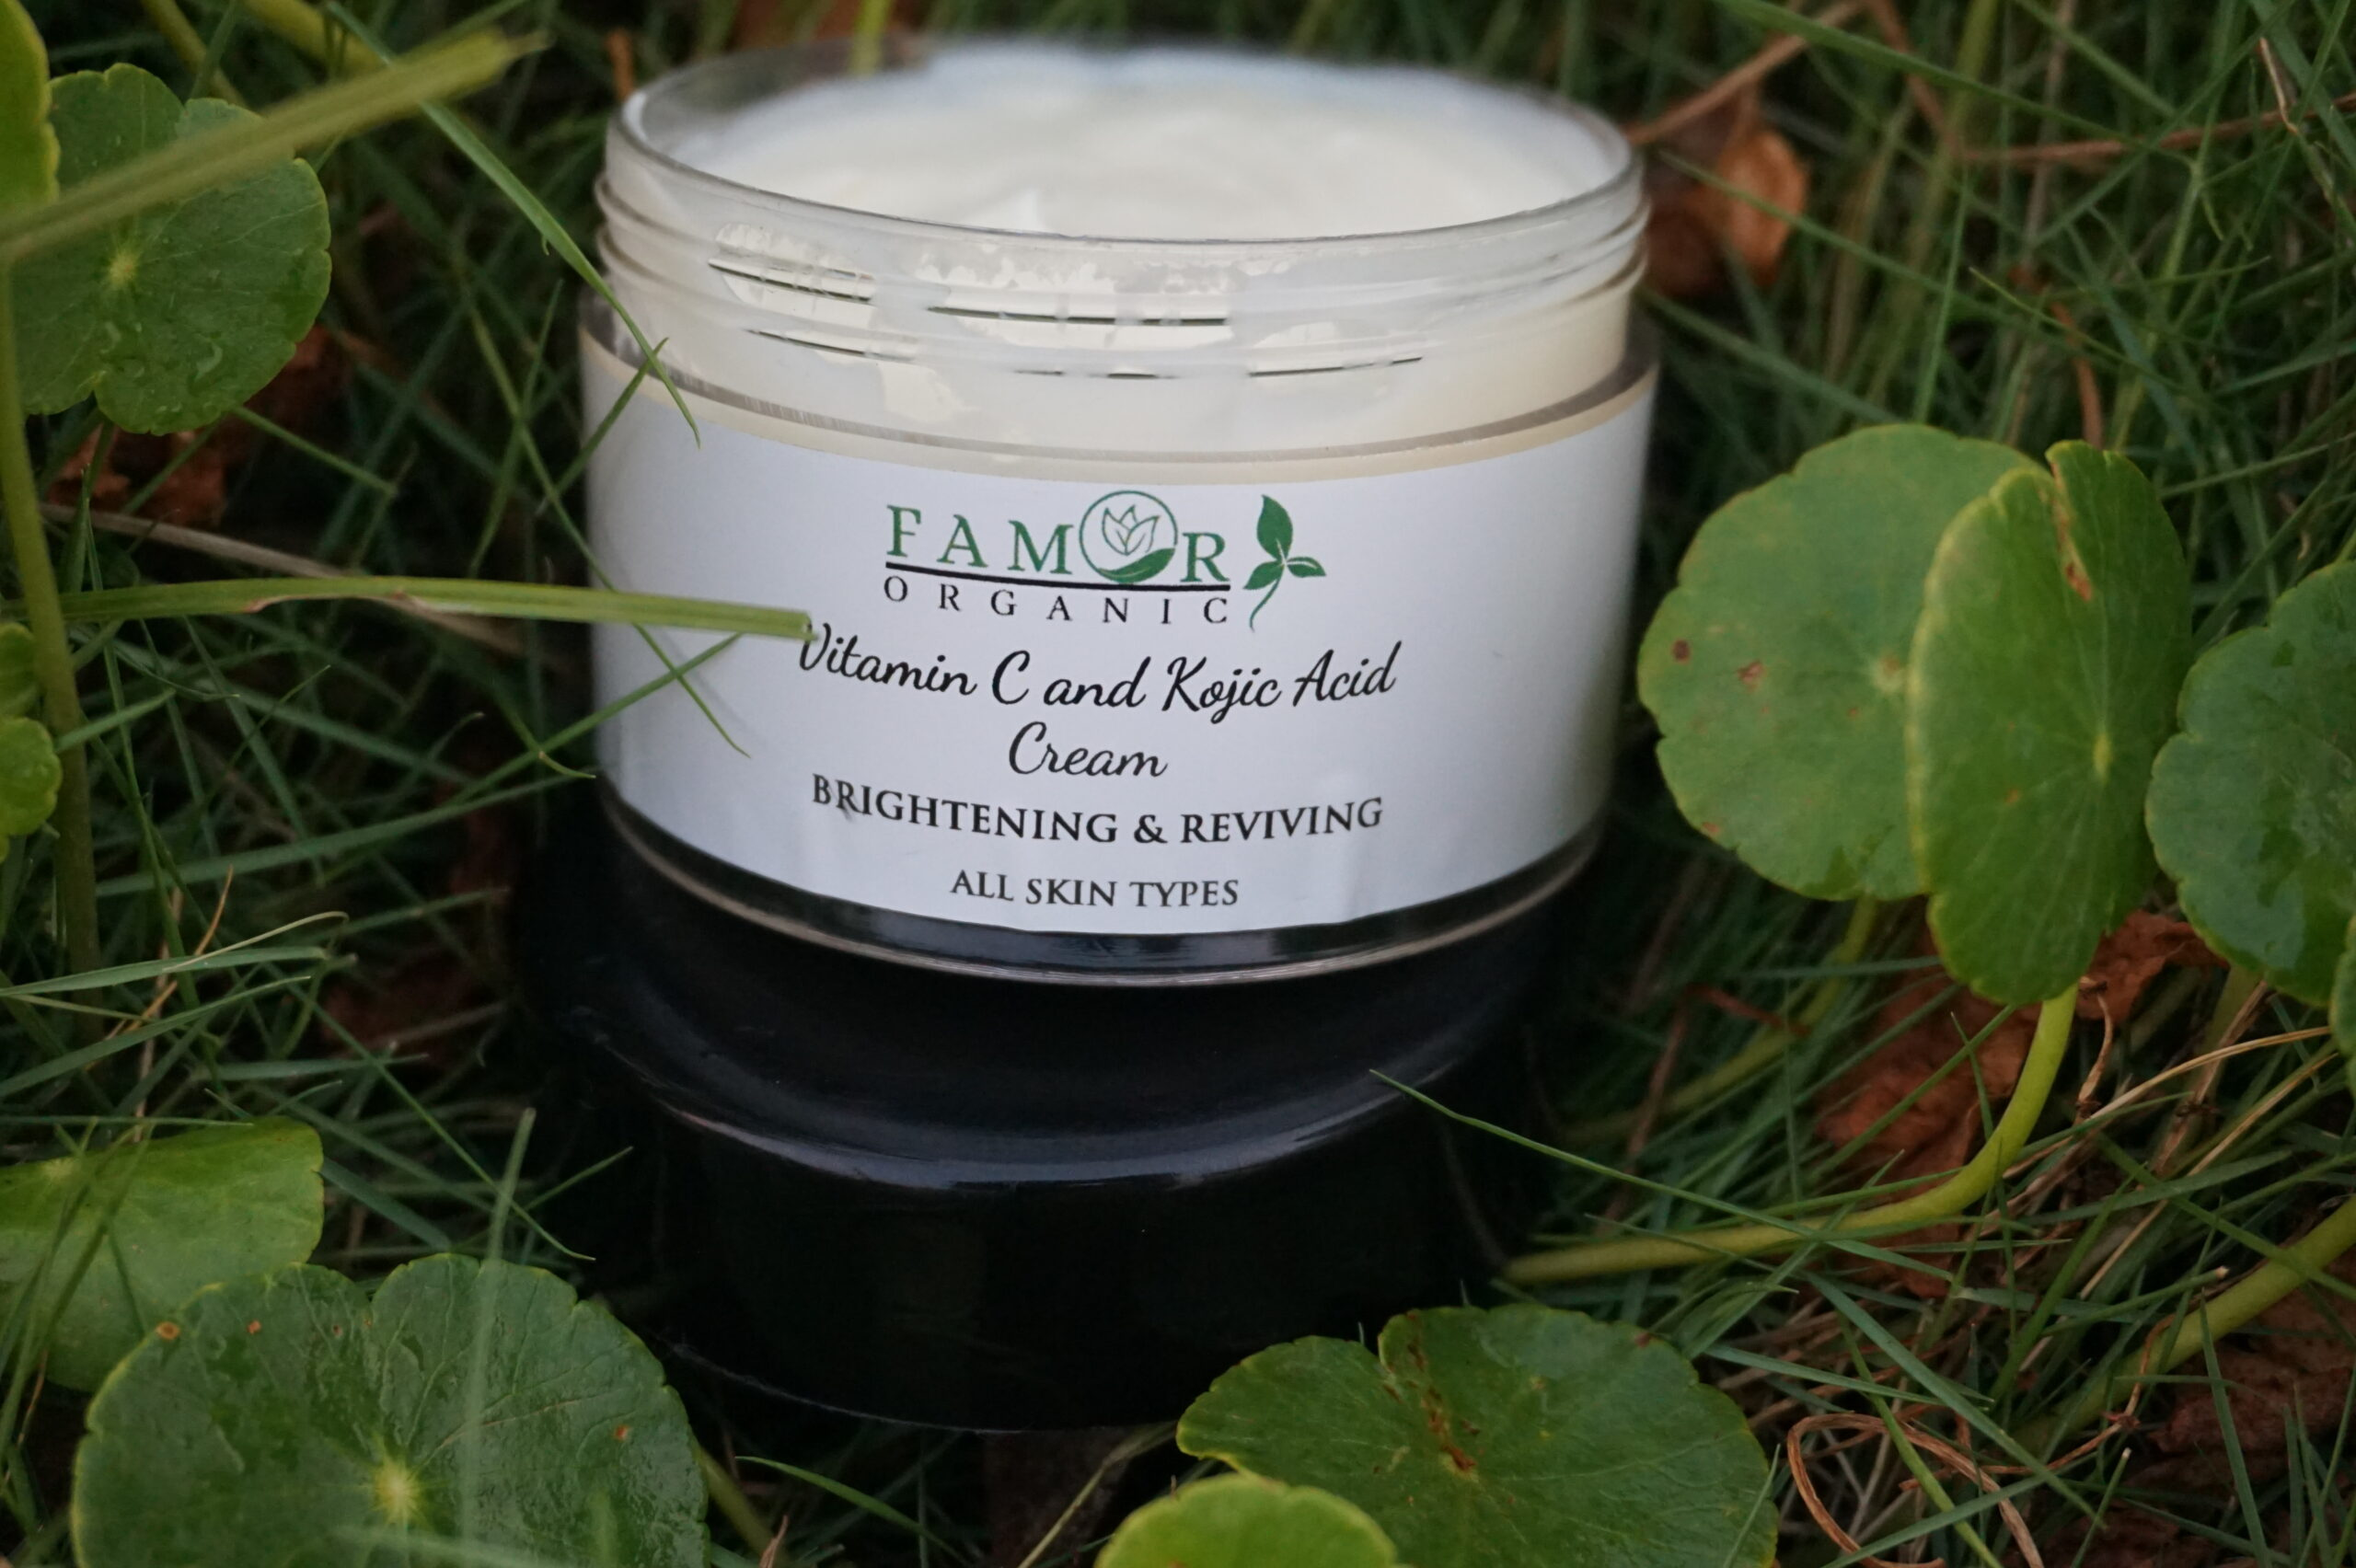 Best organic online store, Best organic skincare products